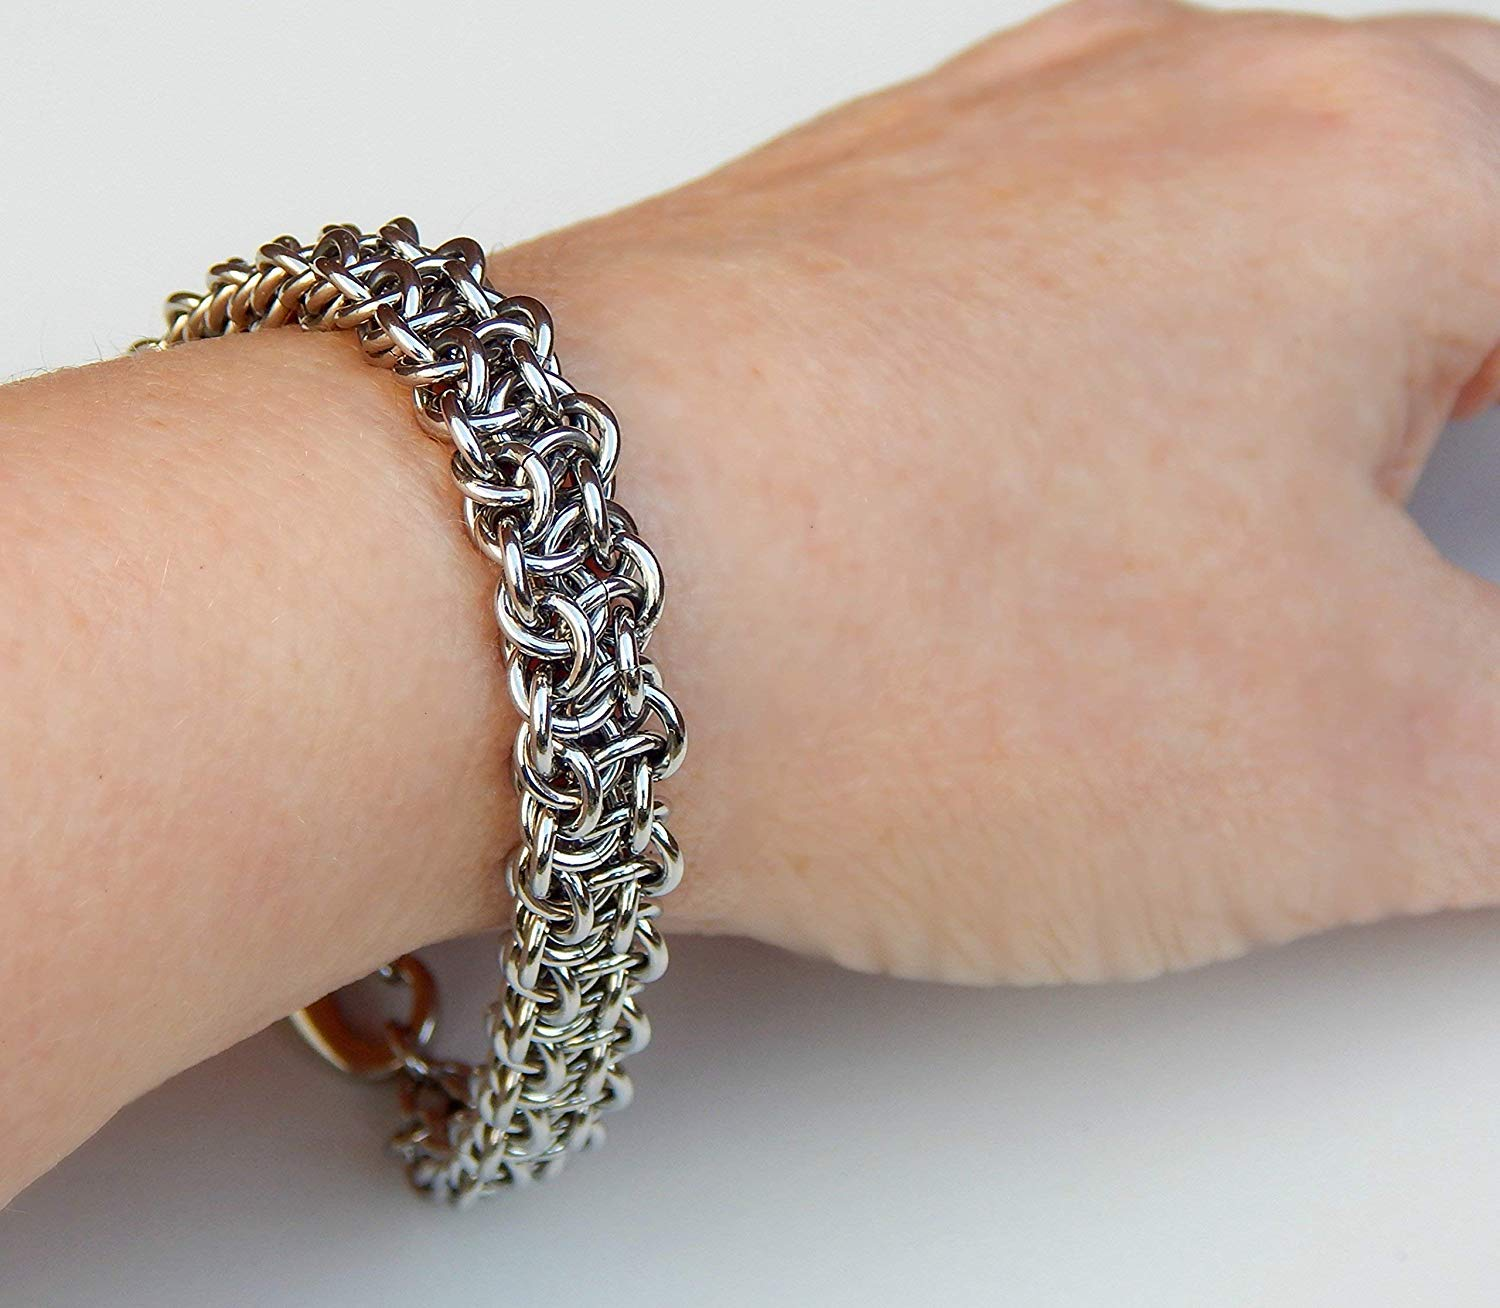 Bracelet in Stainless Steel, 11th Anniversary Gift for Wife - Handcrafted Jewelry for Women & Men by ChainMettle Jewelry